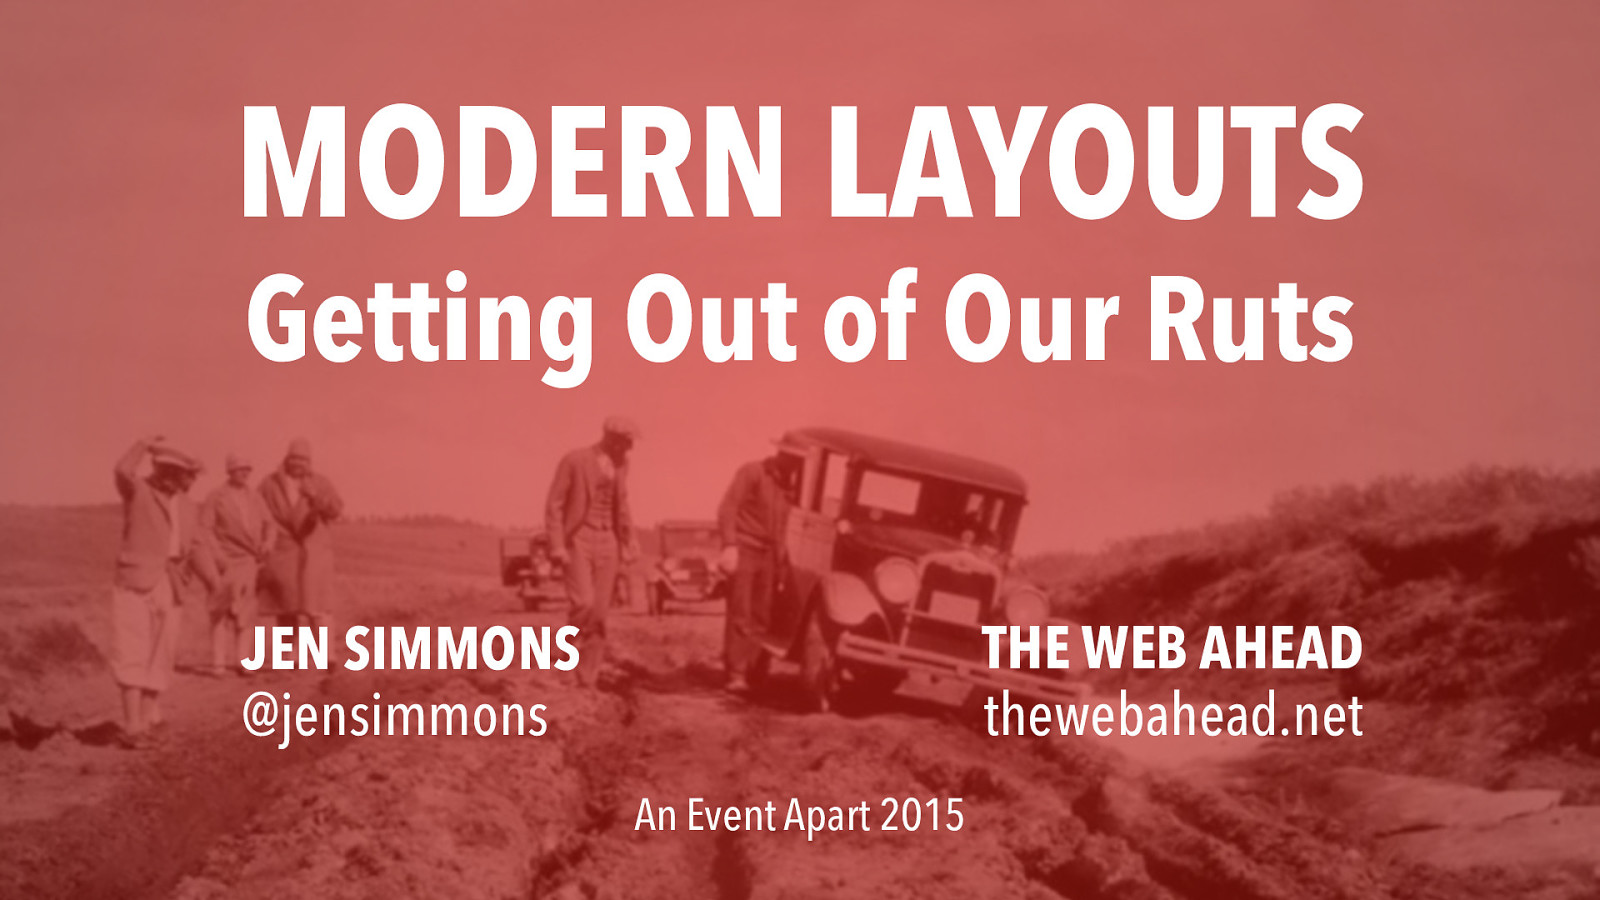 Modern Layouts: Getting Out of Our Ruts